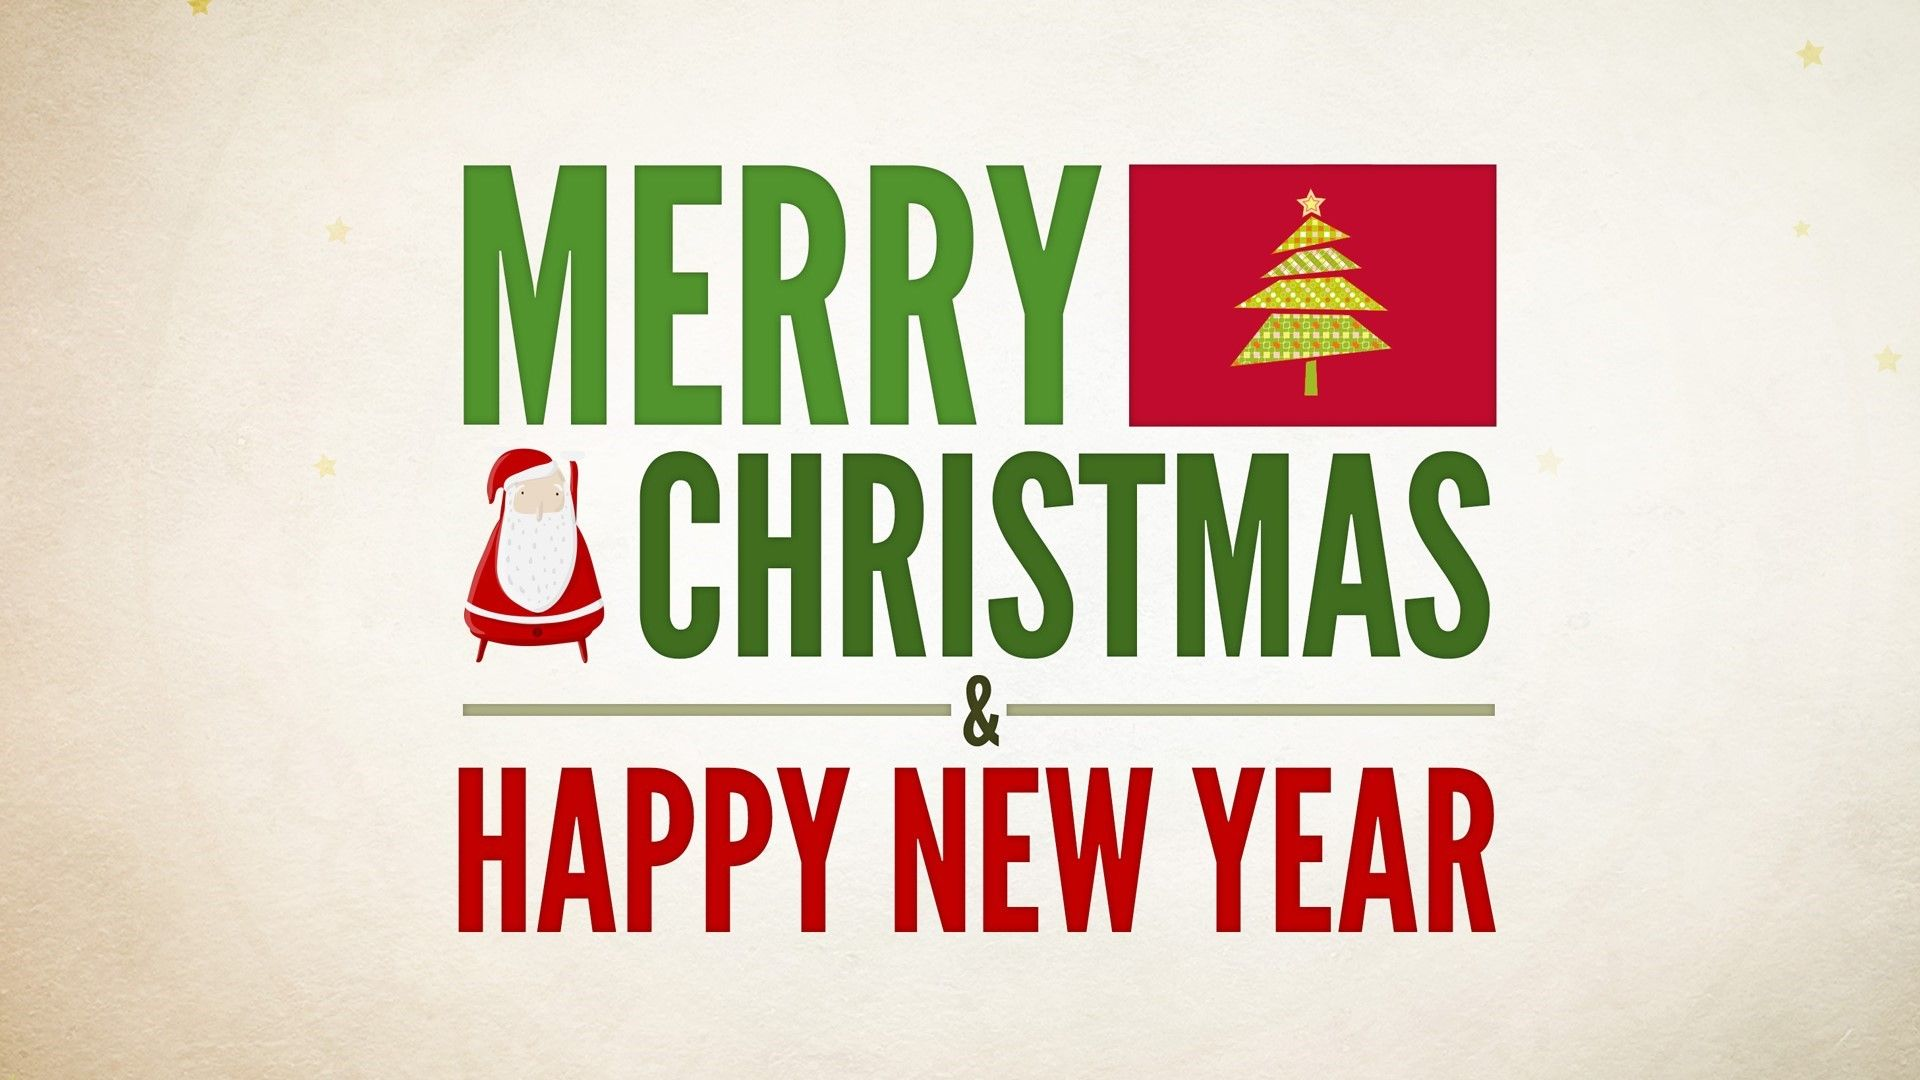 Merry Christmas And Happy New Year Photos